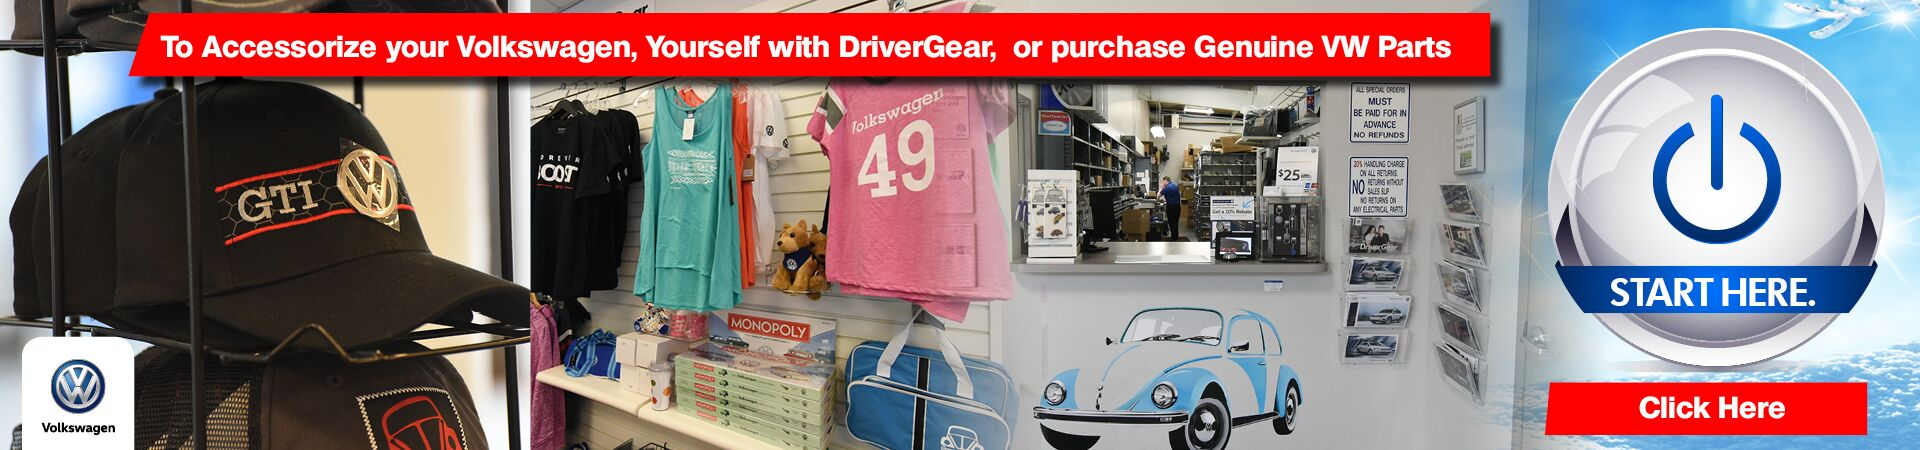 April DriverGear and VW Parts